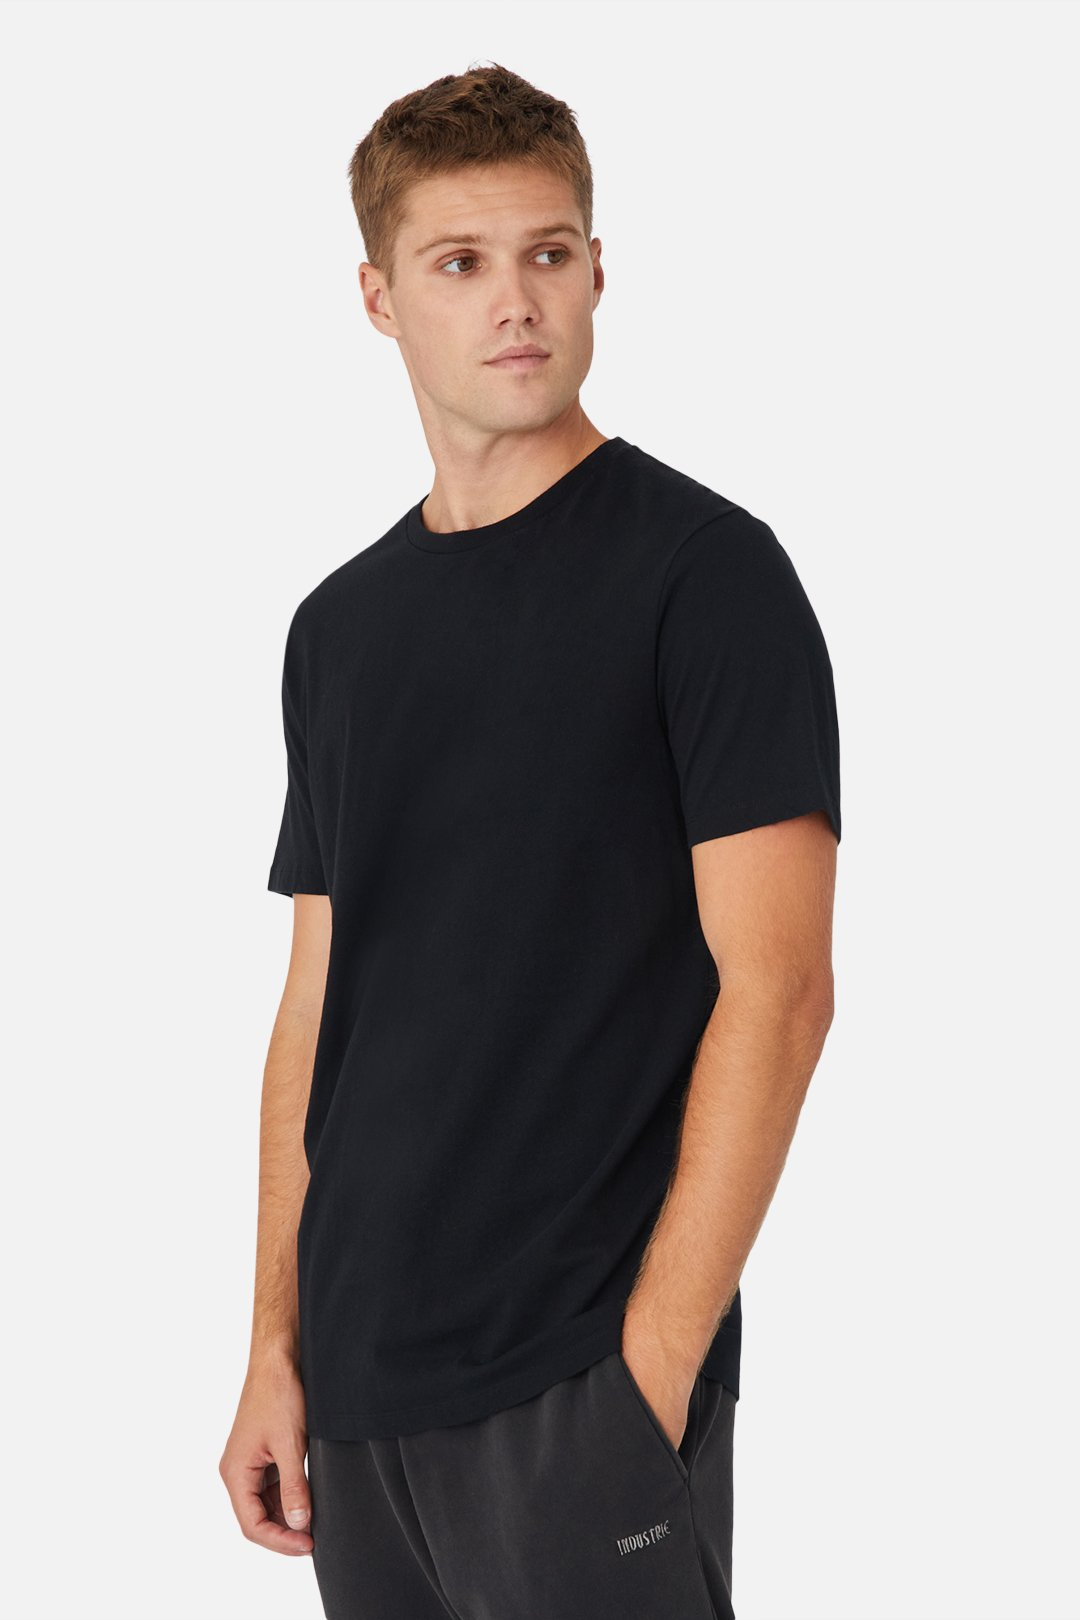 The New Basic Crew Tee - Black